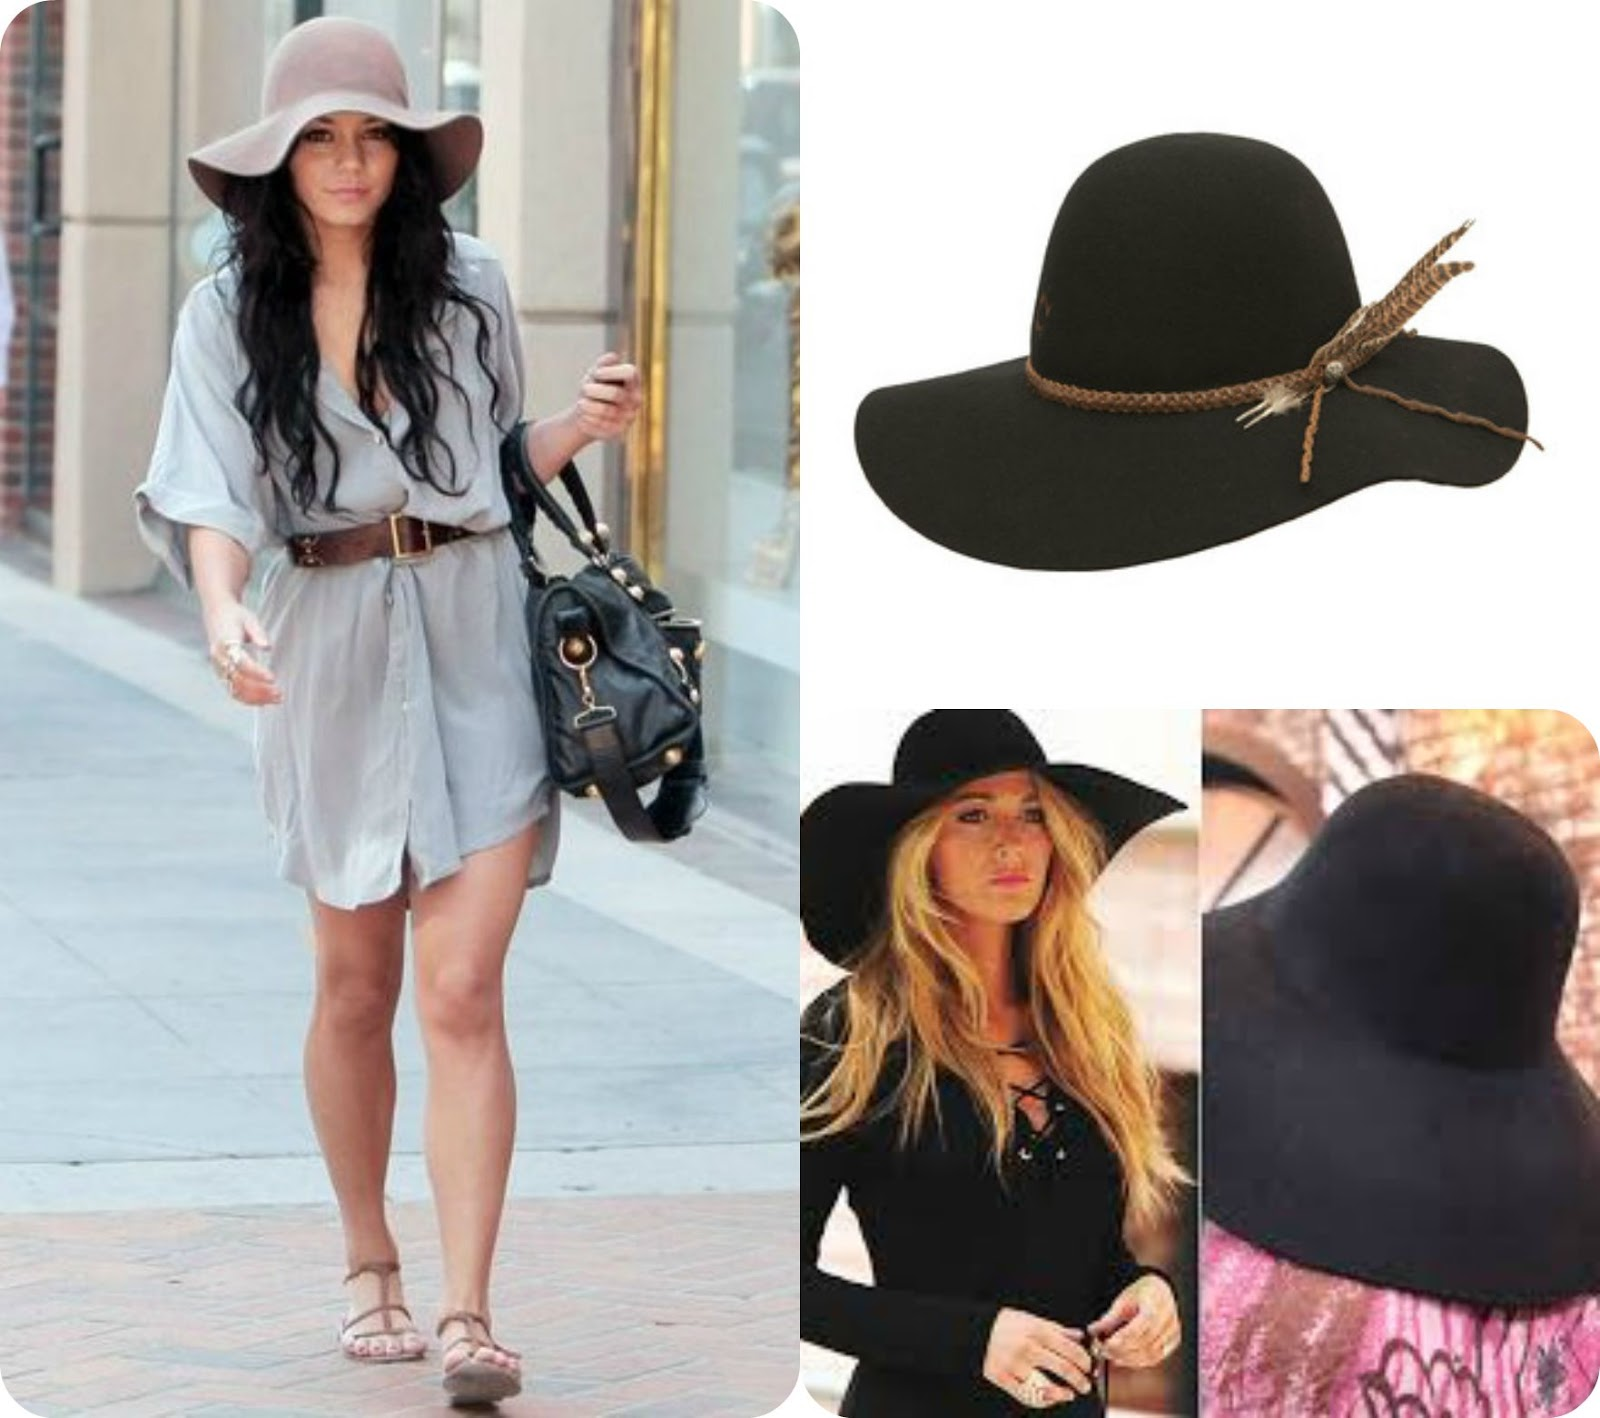 93d485ec1fa208 We love this chic trend at Giddy Up Glamour! Blake Lively and Venessa  Huudgens are our twins this Tuesday; rocking their floppy hats.